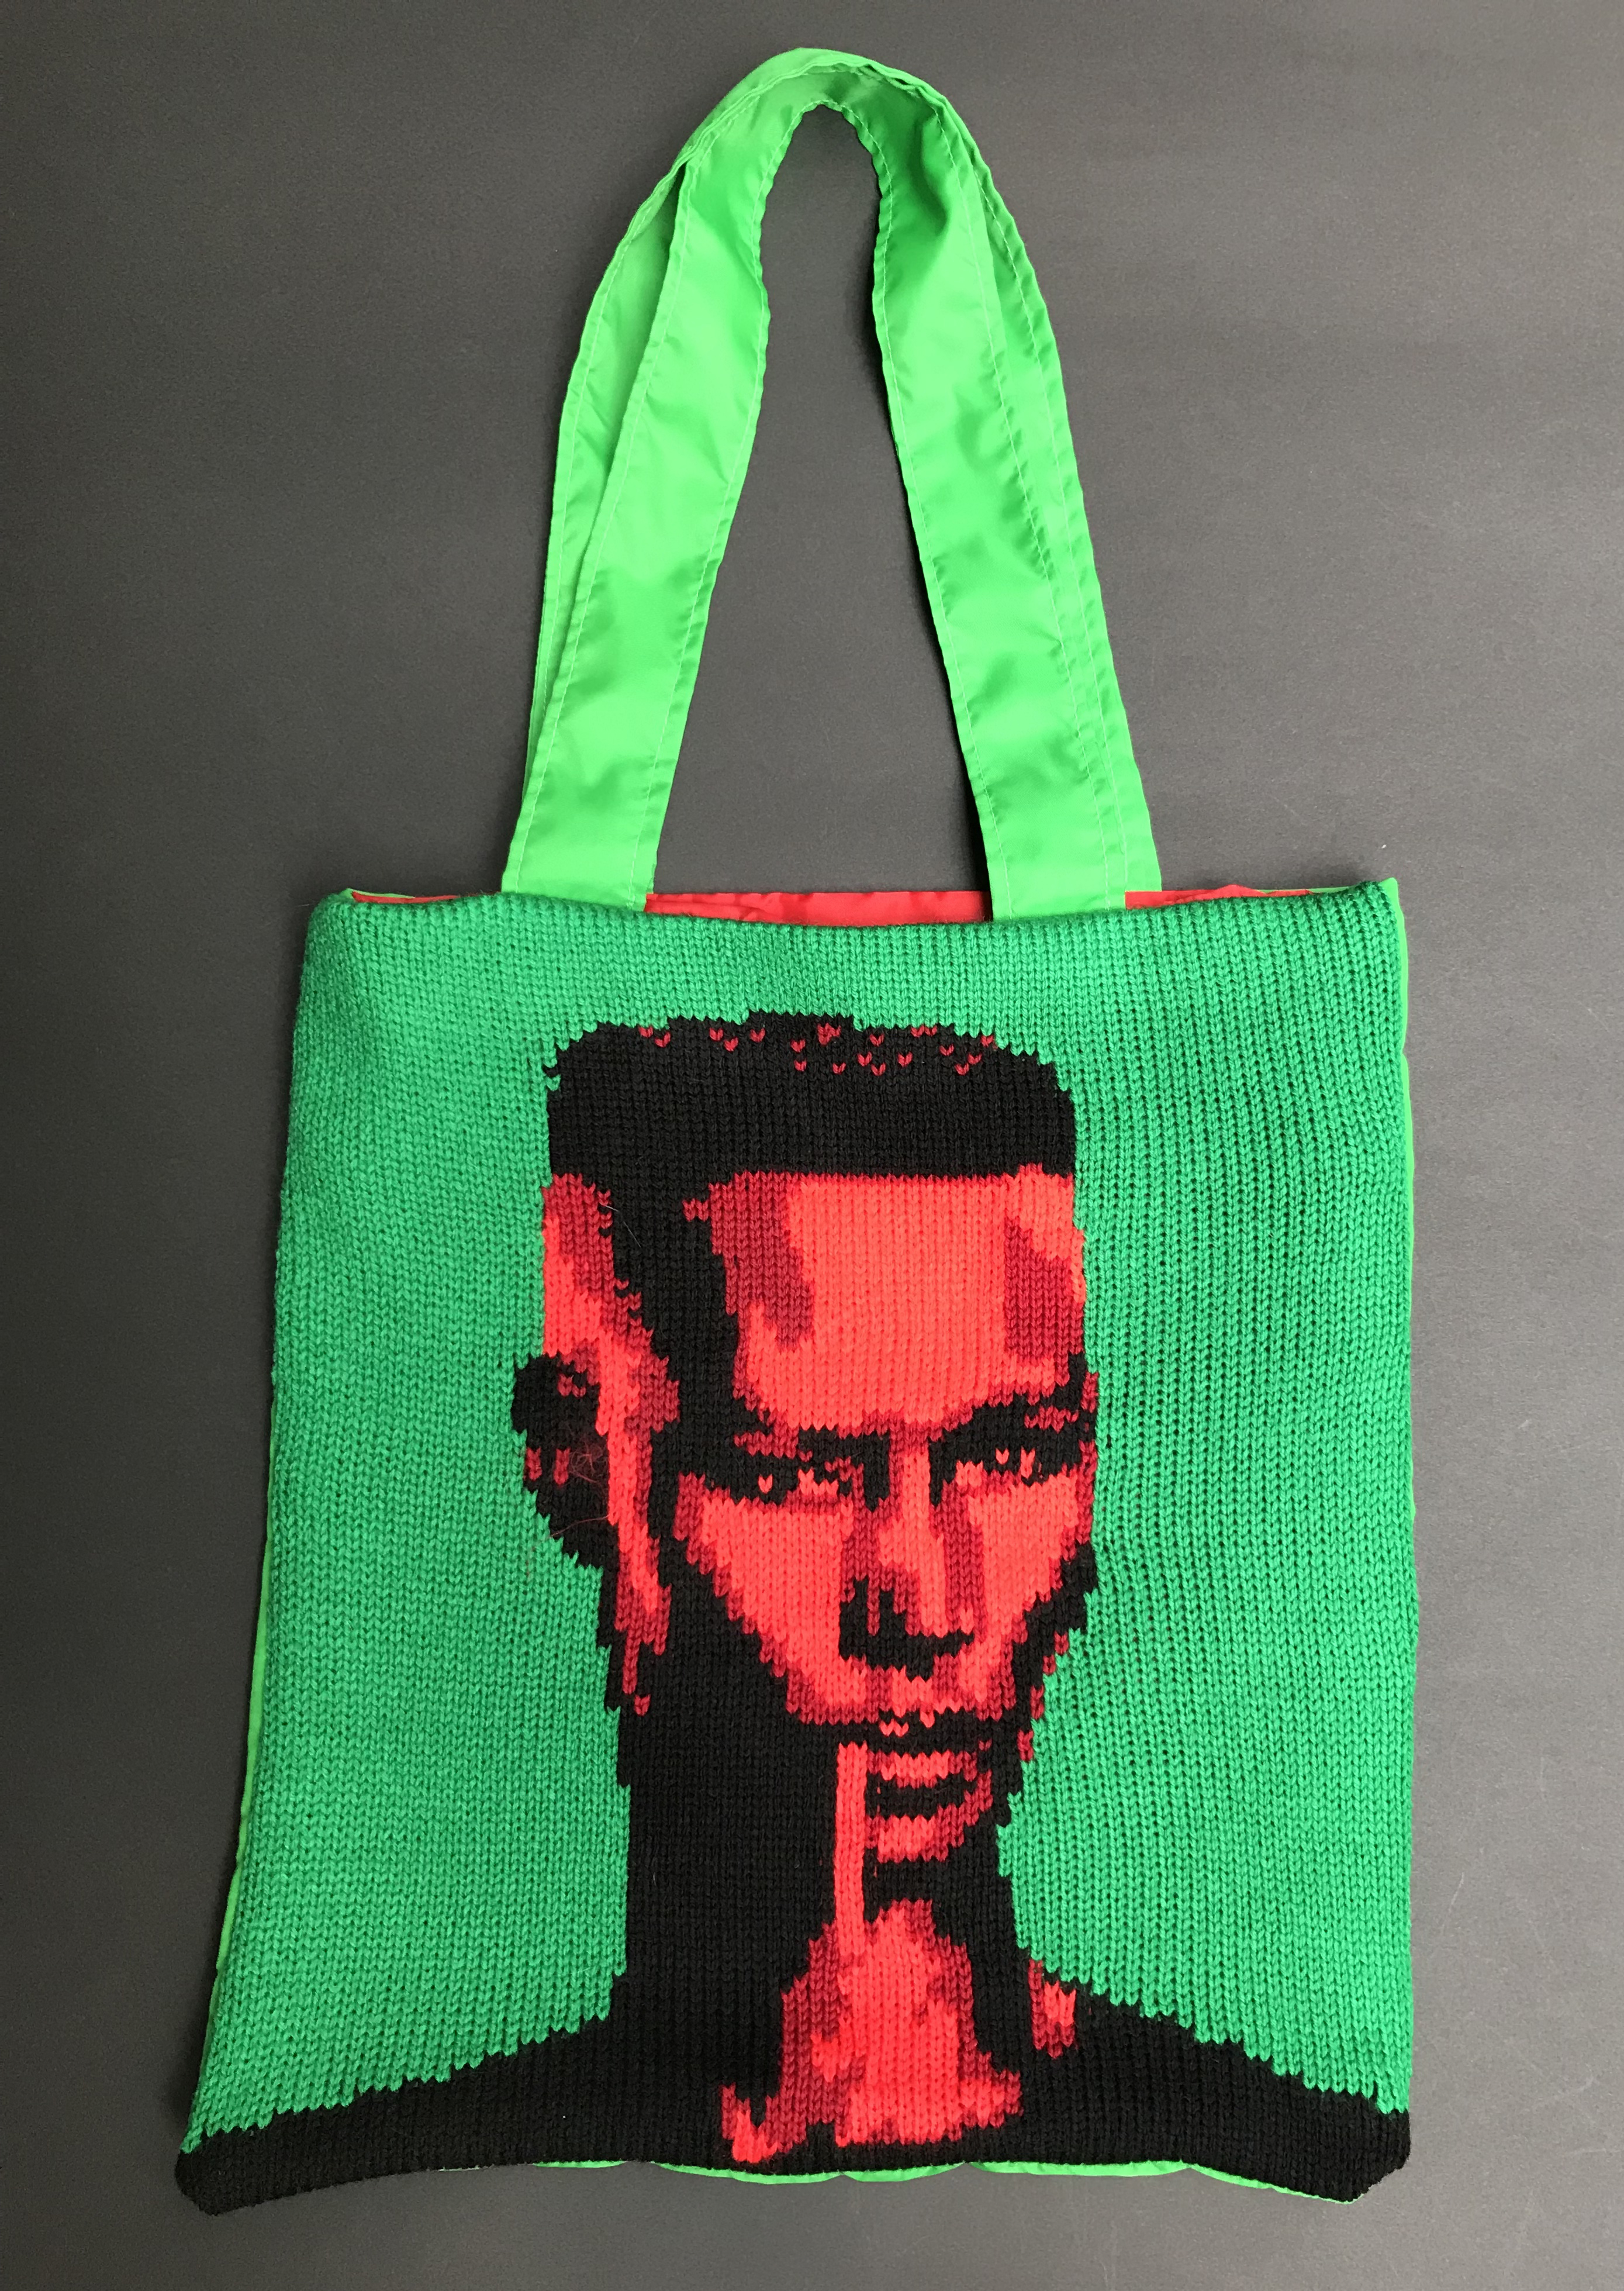 Grace Jones knit bag